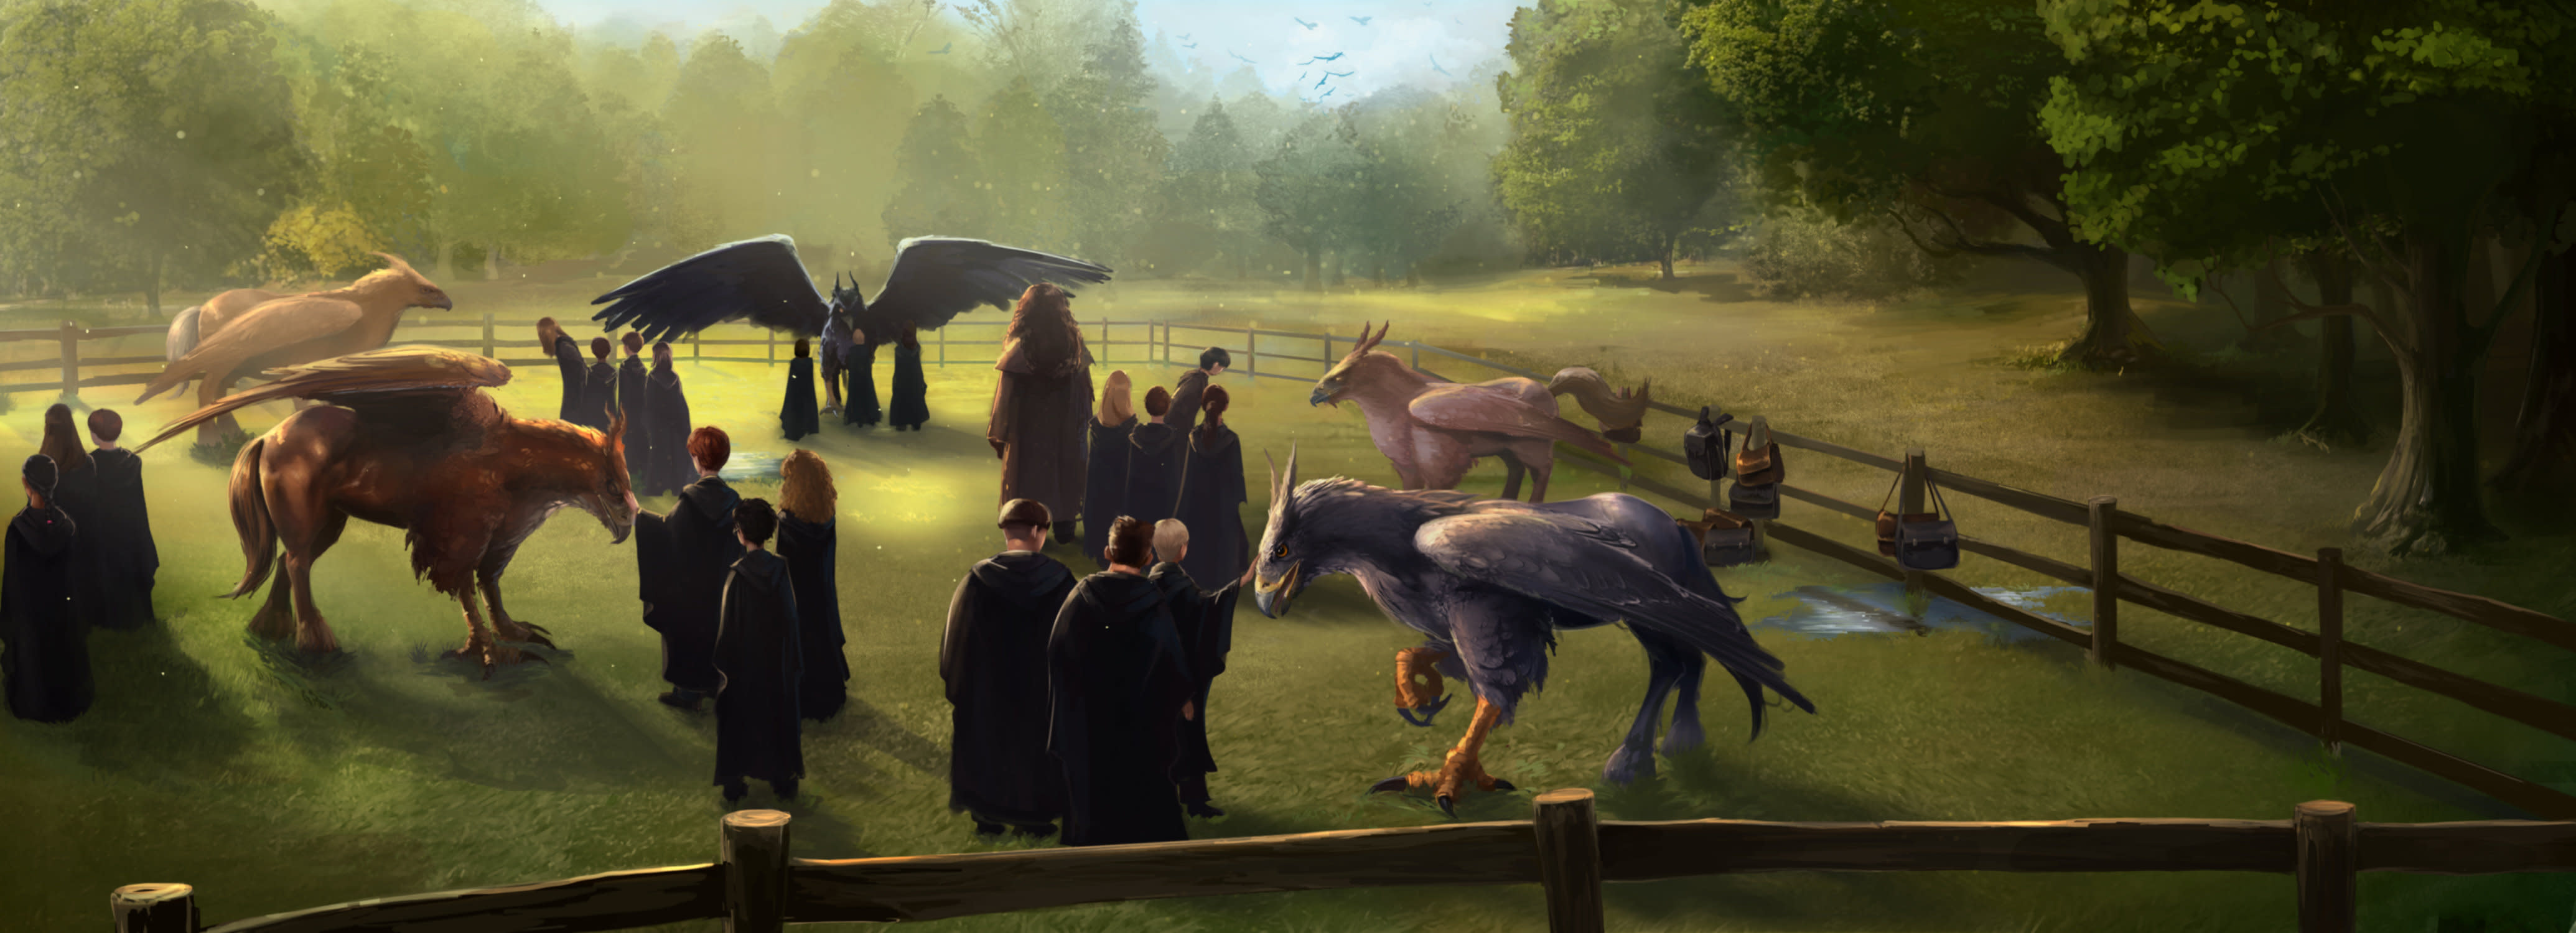 Hippogriff PM B3C6M3 SlytherinAndGryiffindorStudentsBeingTaughtAboutHippogriffsFromHagridInCareOfMAgicalCreatures Moment